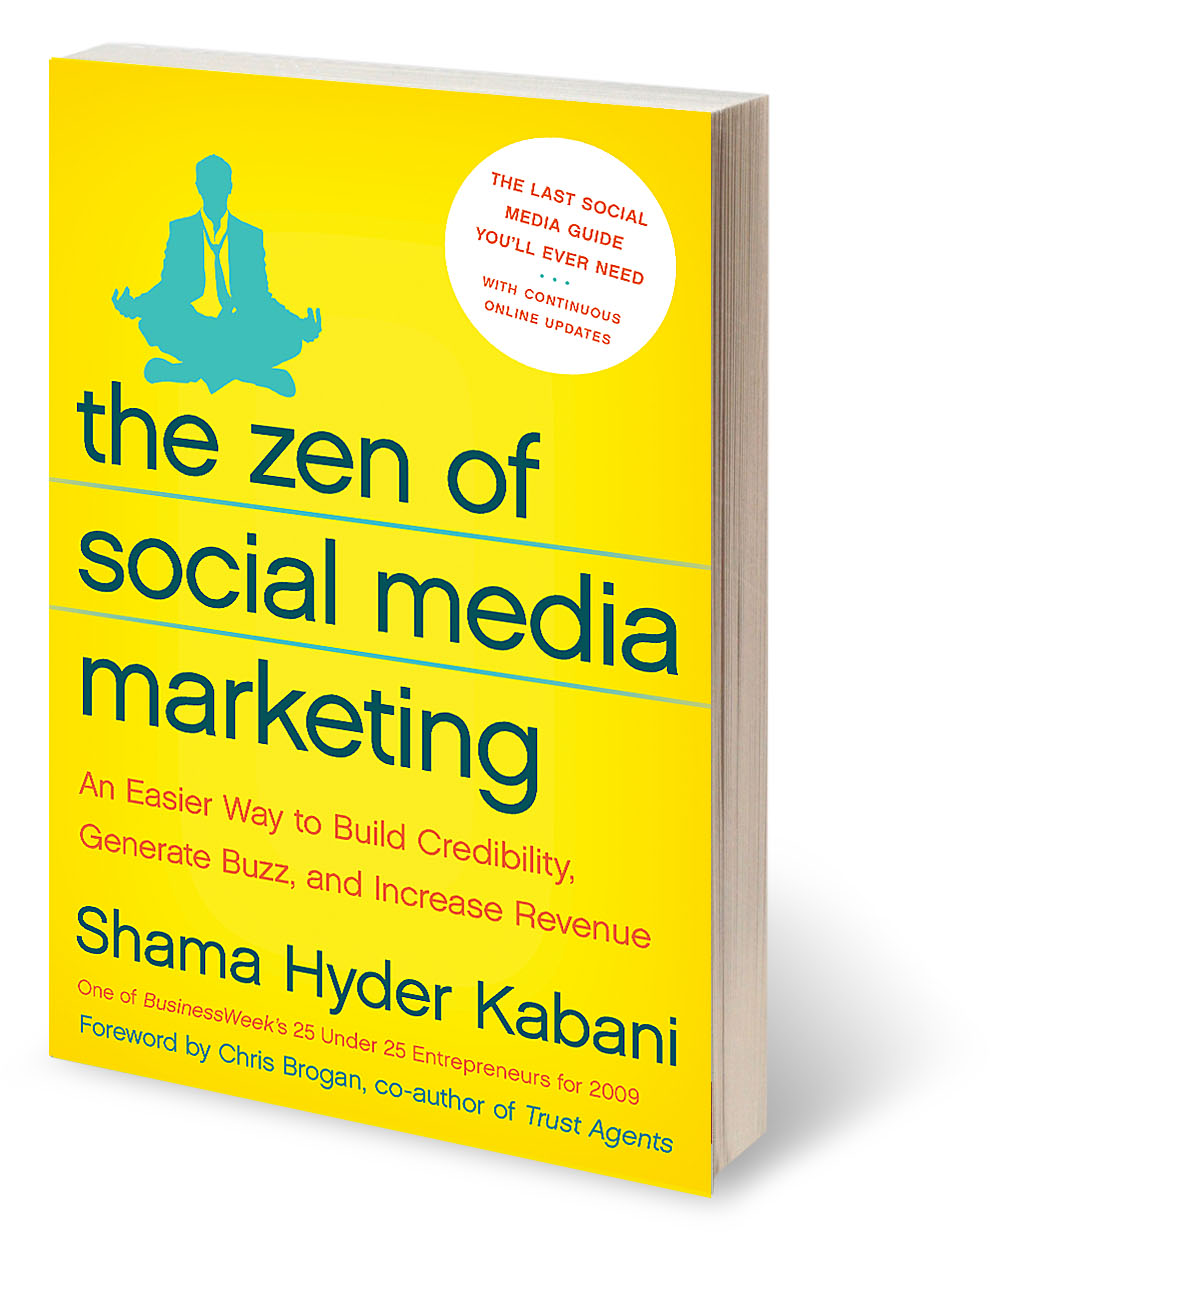 The Zen of Social Media Marketing Book Review